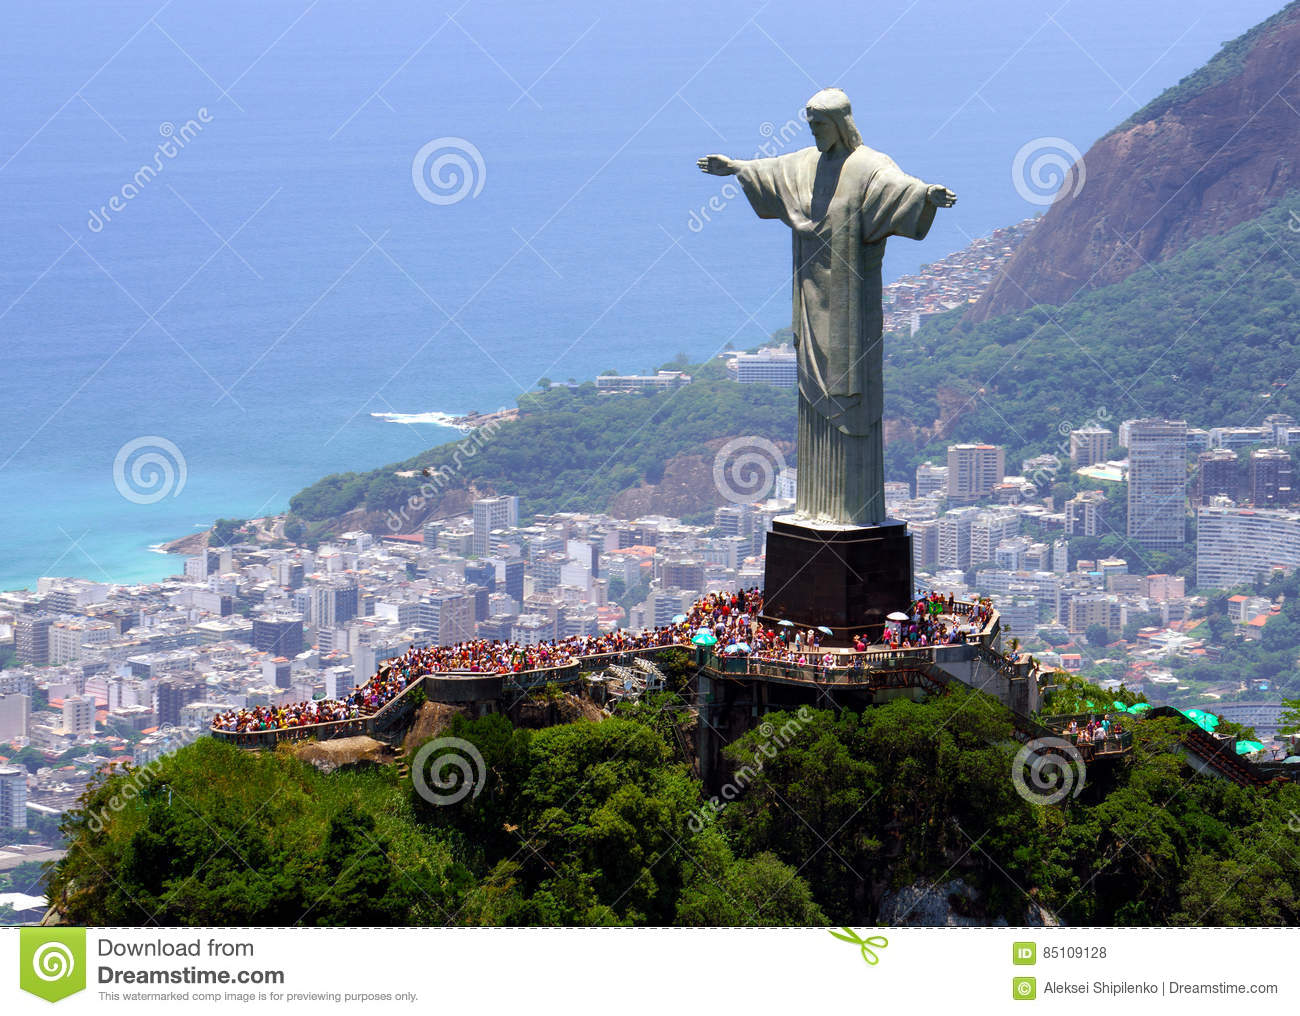 Christ the Redeemer in Rio de Janeiro from helicopter : brasil